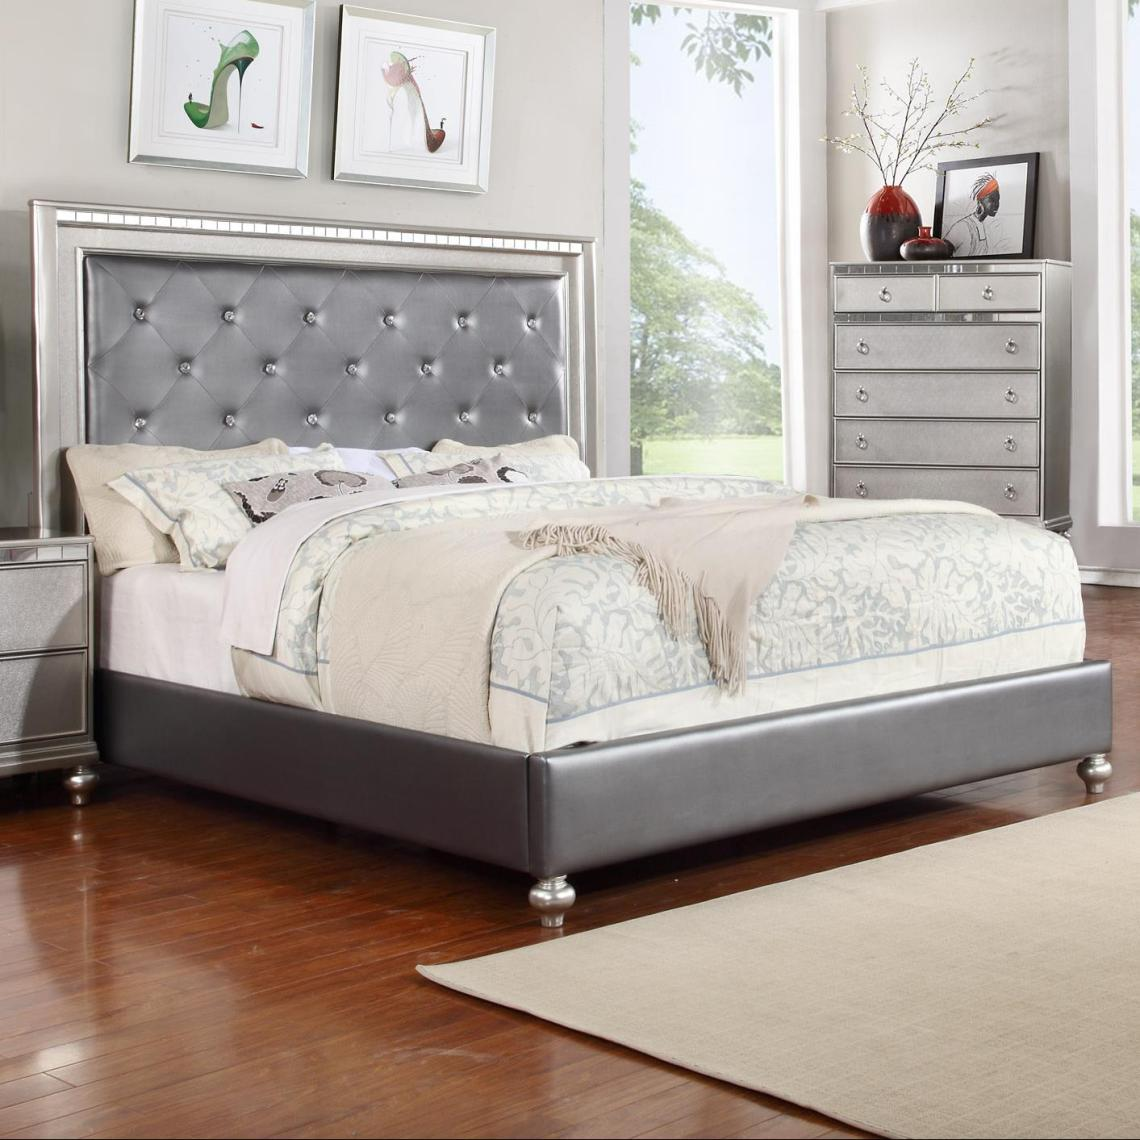 Image Result For Queen Bed Frame